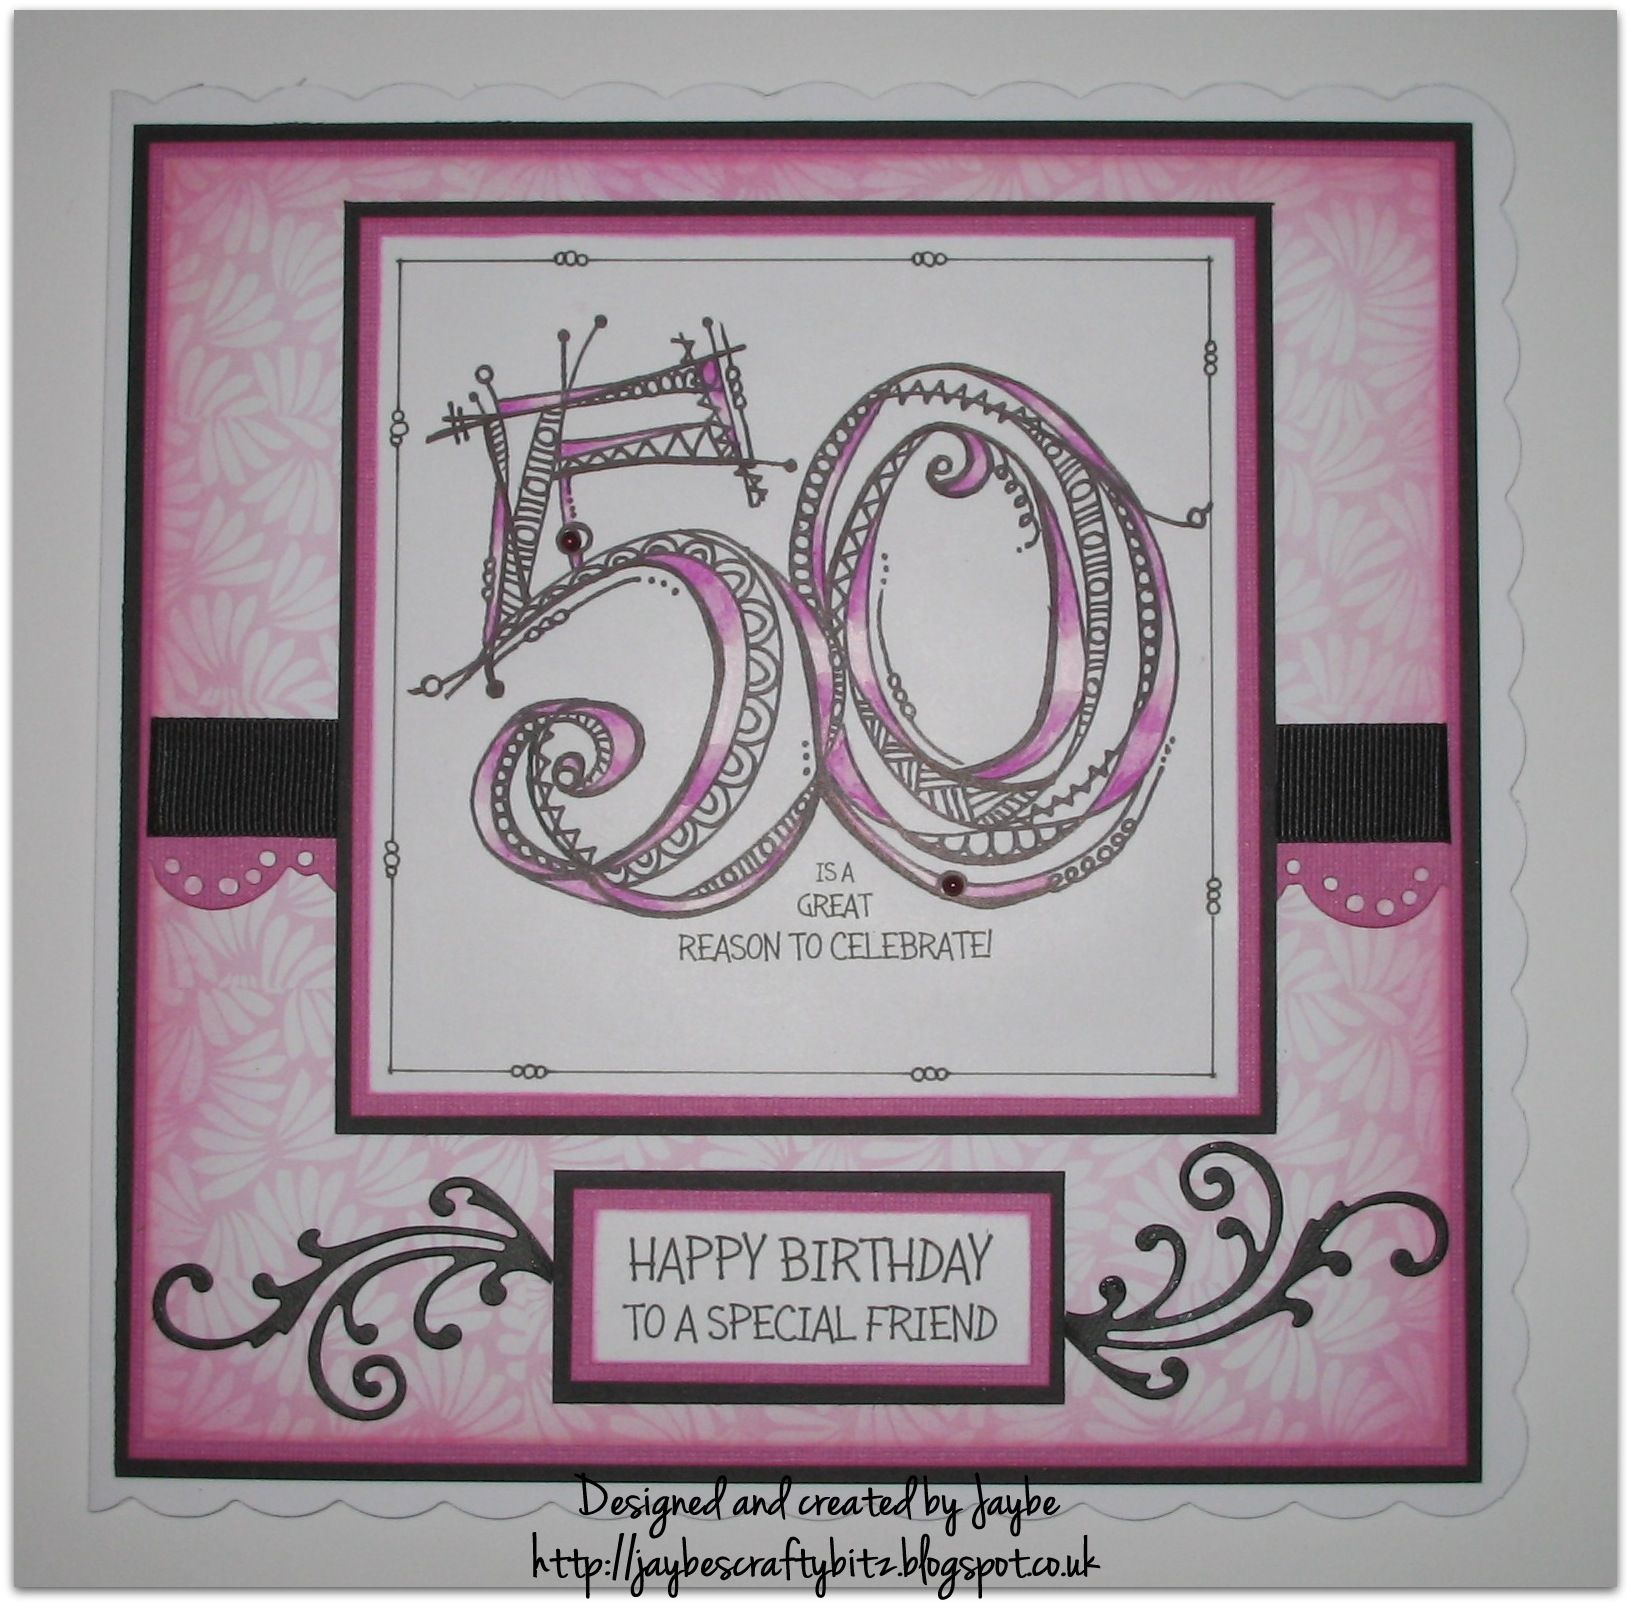 A Zenspirations 50th Birthday Card Using Joanne Fink's